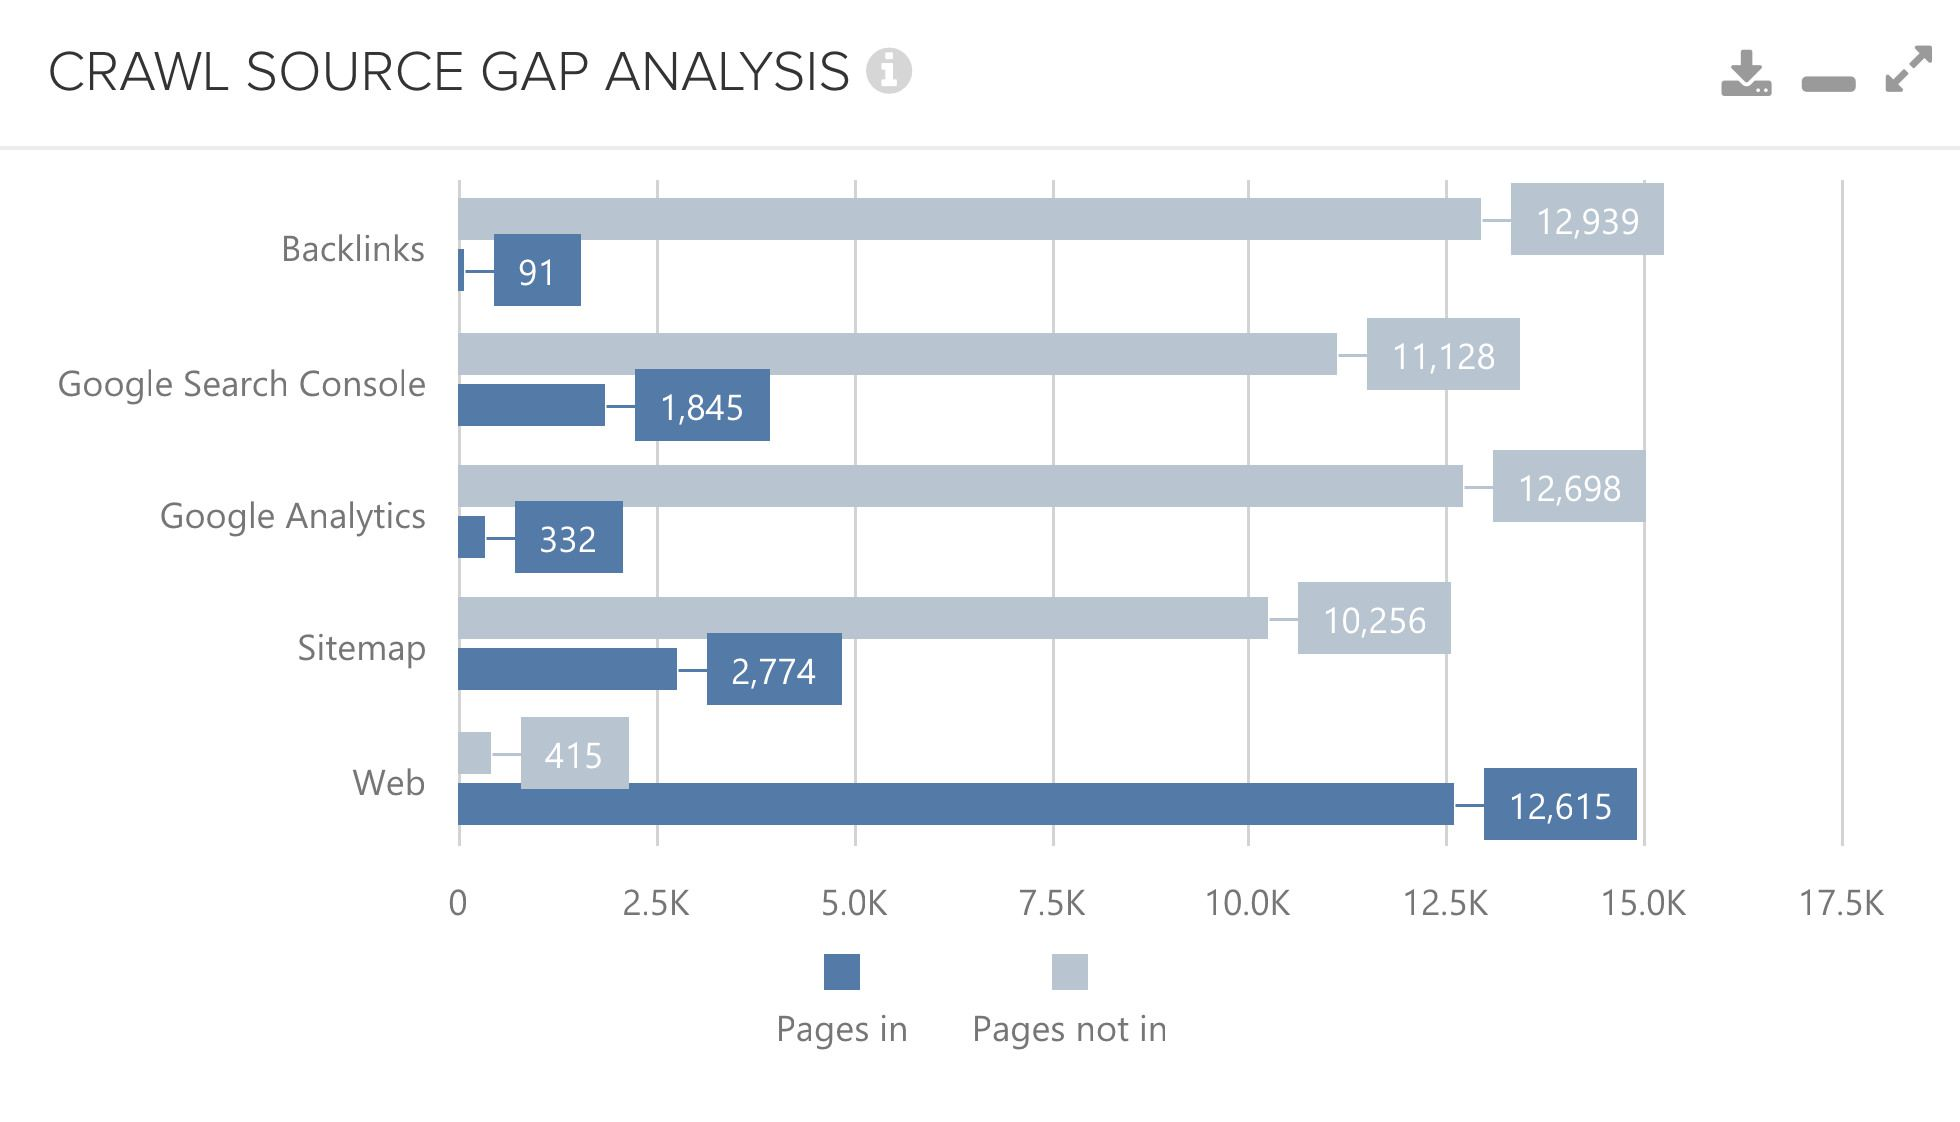 DeepCrawl Crawl Source Gap Analysis